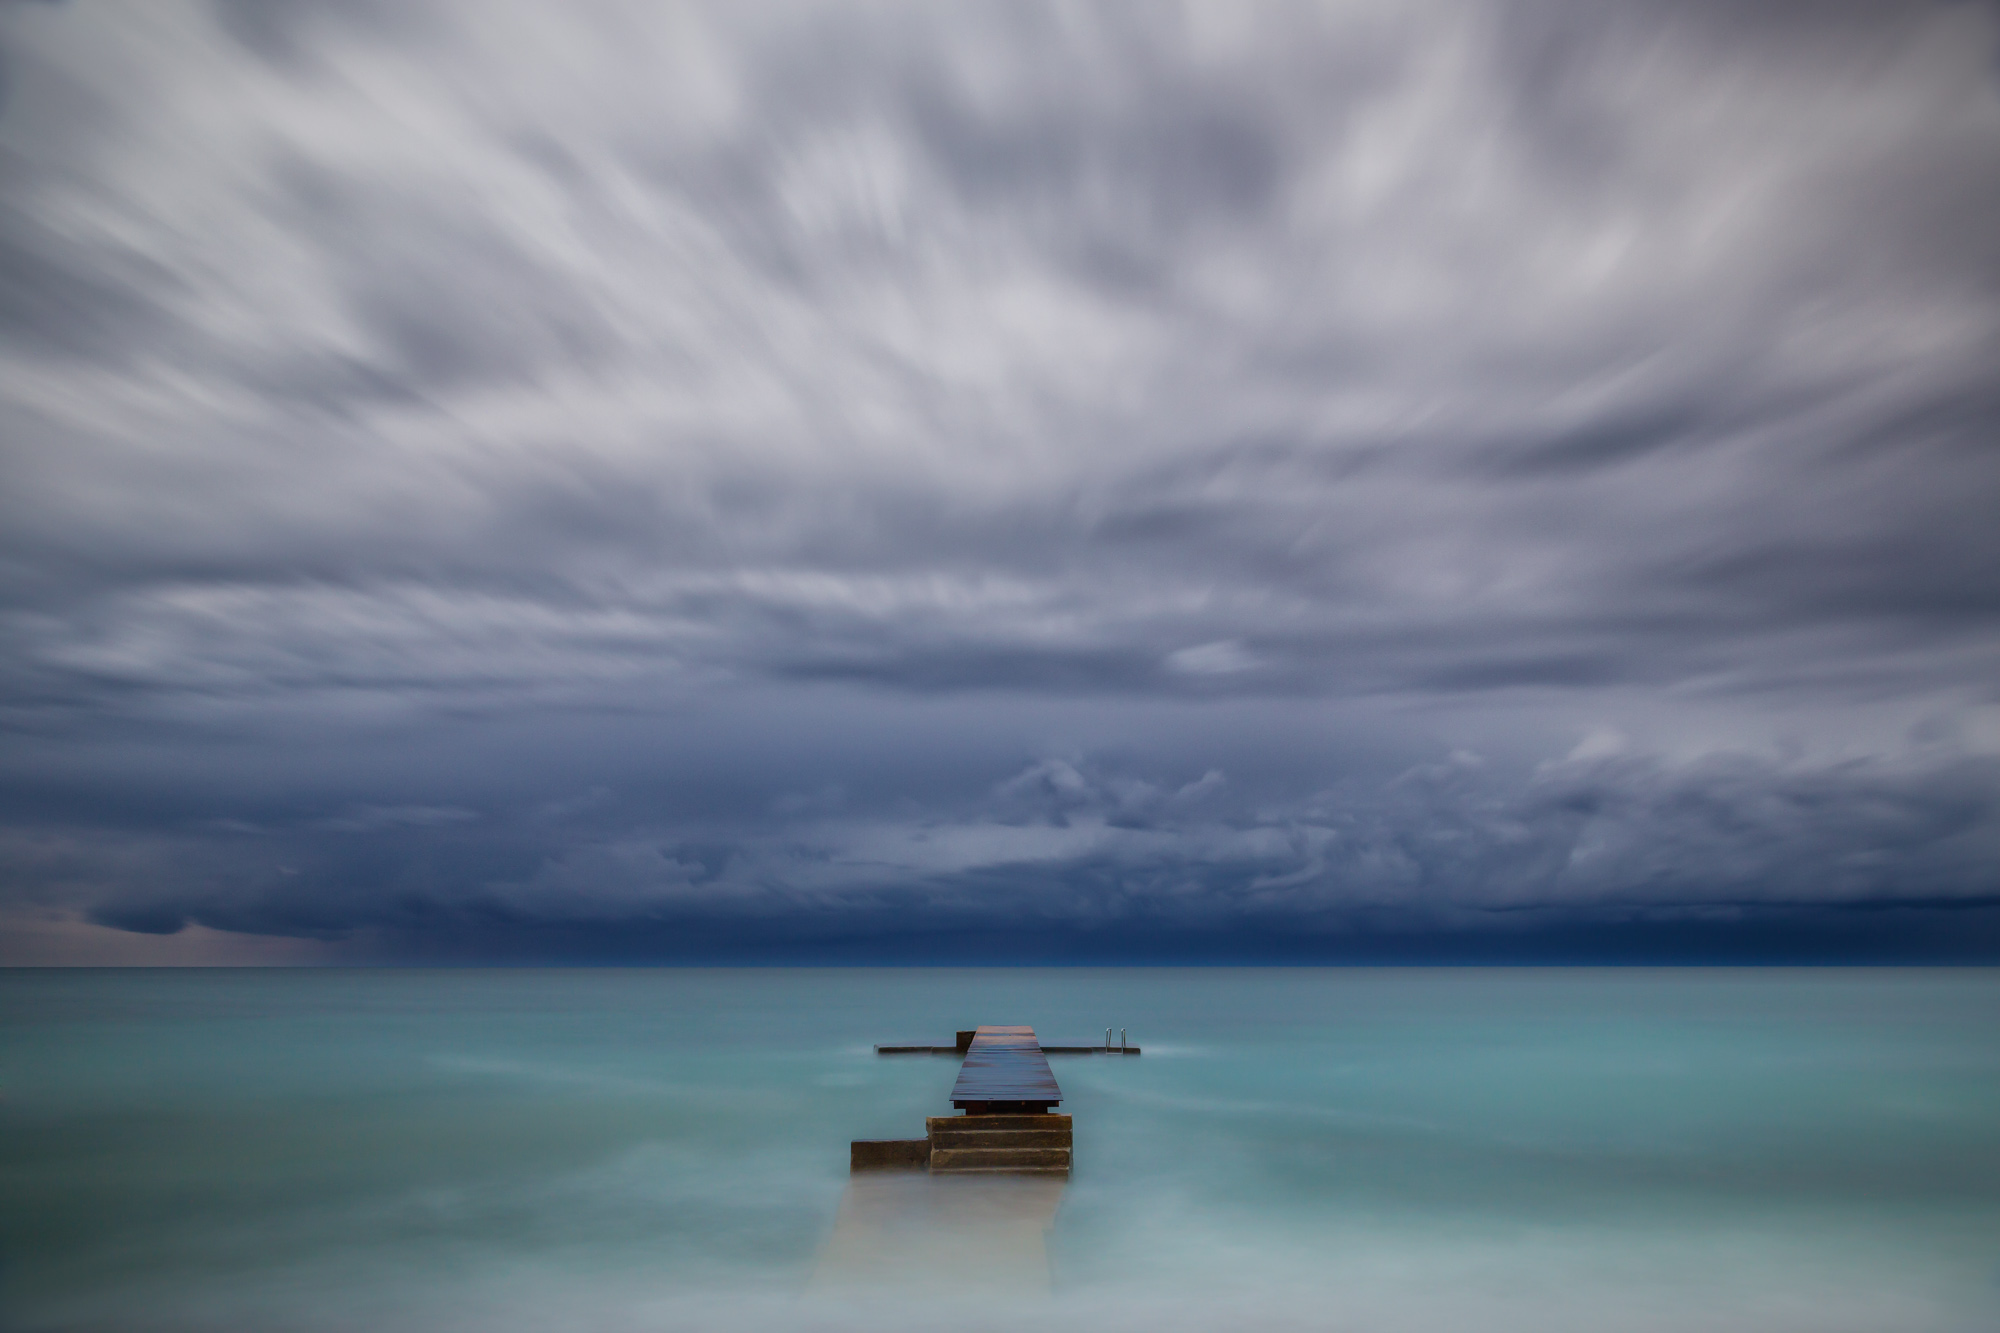 minimal long exposure photograph of a wooden jetty in the ocean with a storm approaching